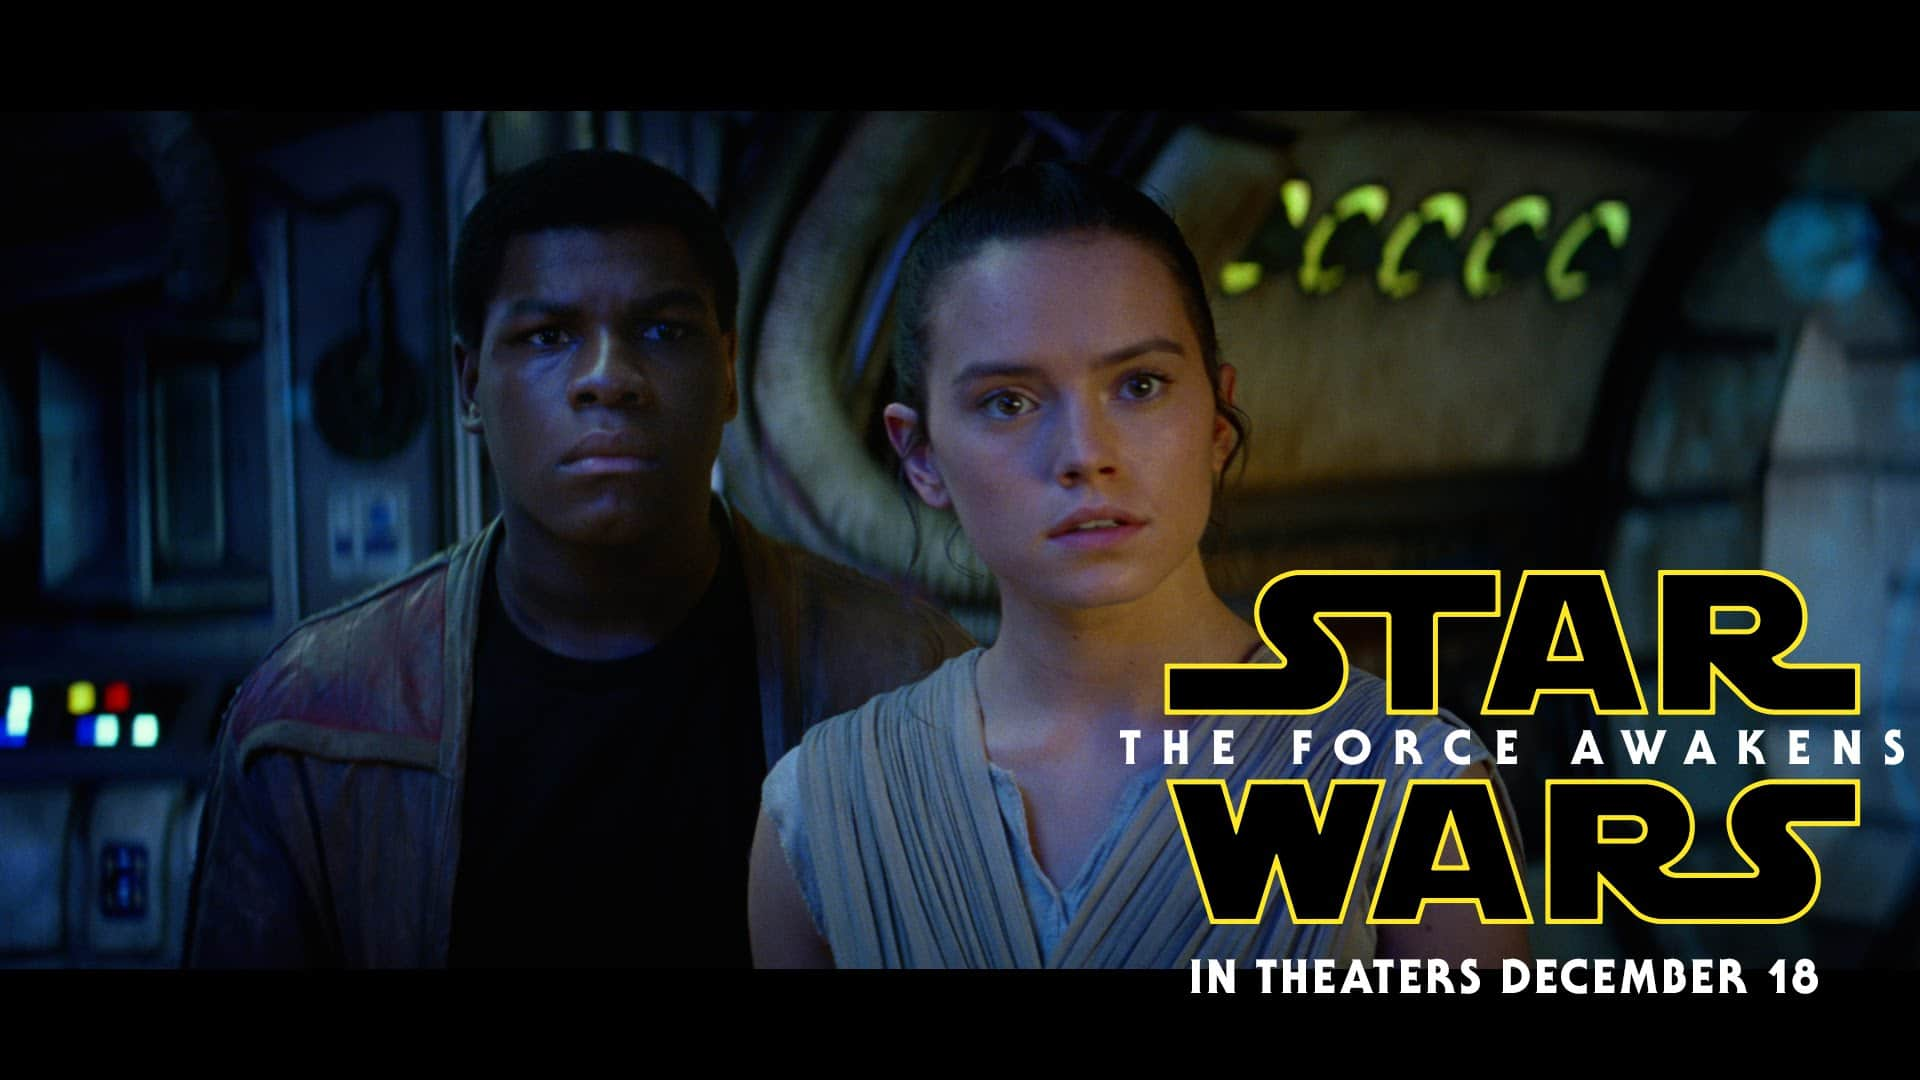 Star Wars soundtrack sold 94,000 last week. And classical sales?